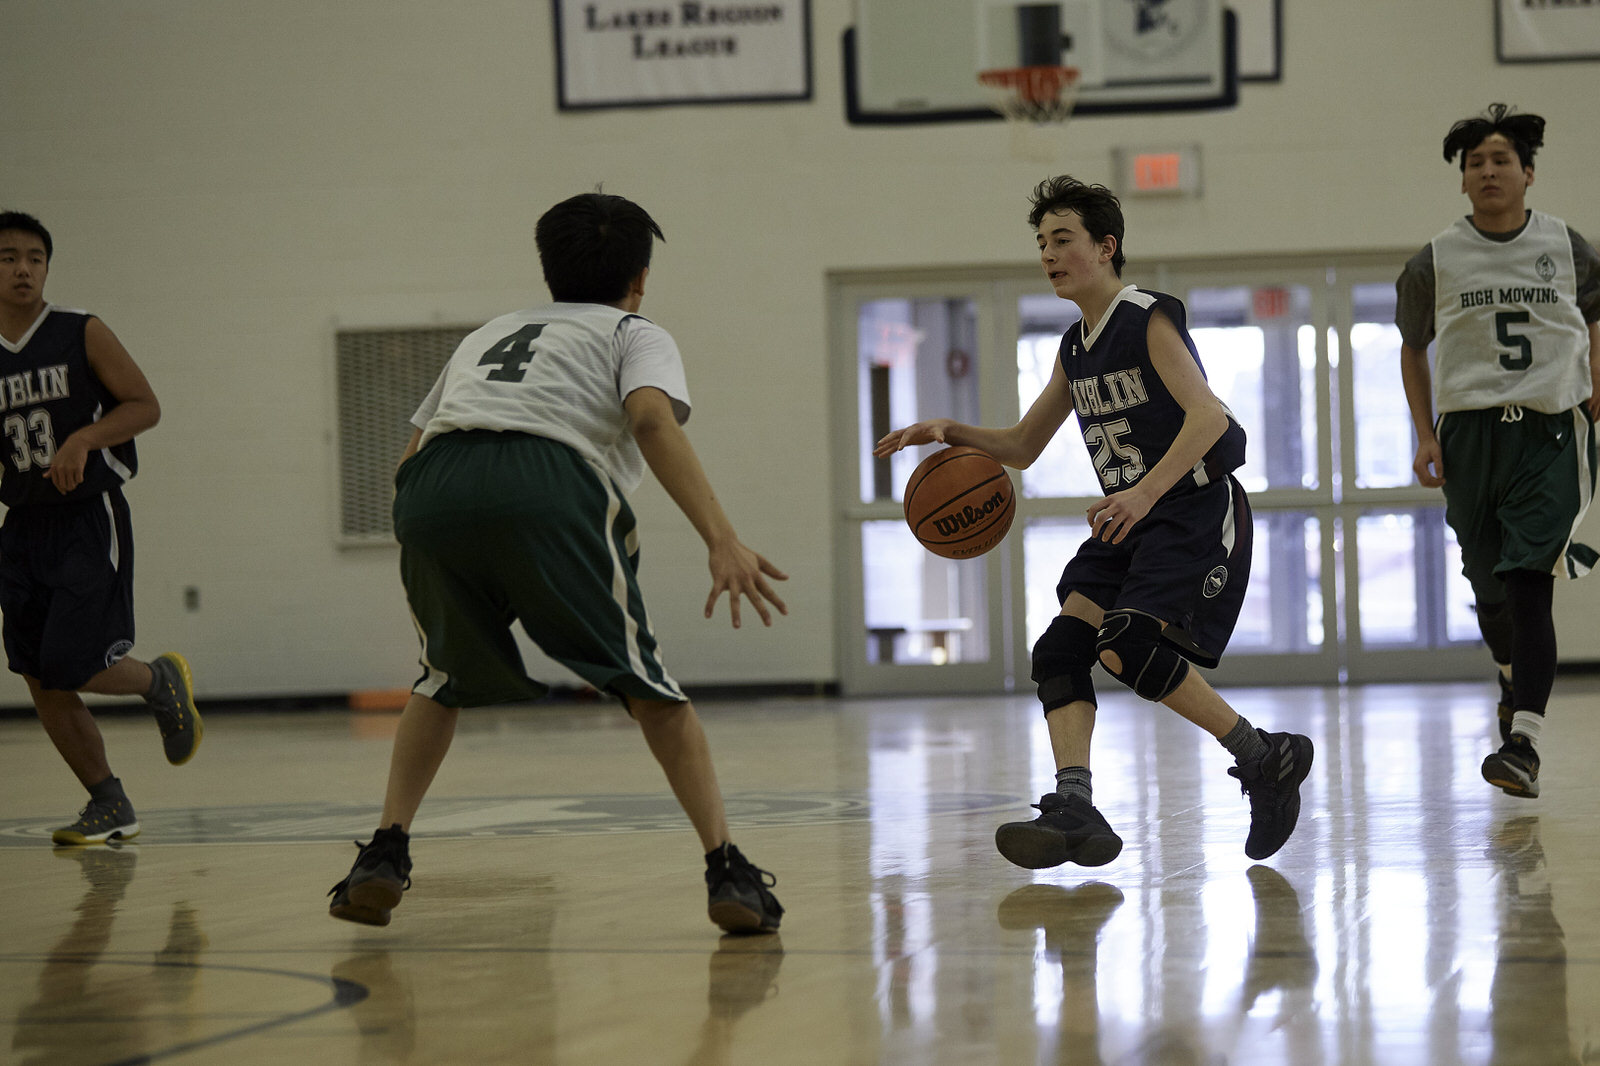 Dublin JV Boys Basketball vs High Mowing School - Jan 26 2019 - 0194.jpg